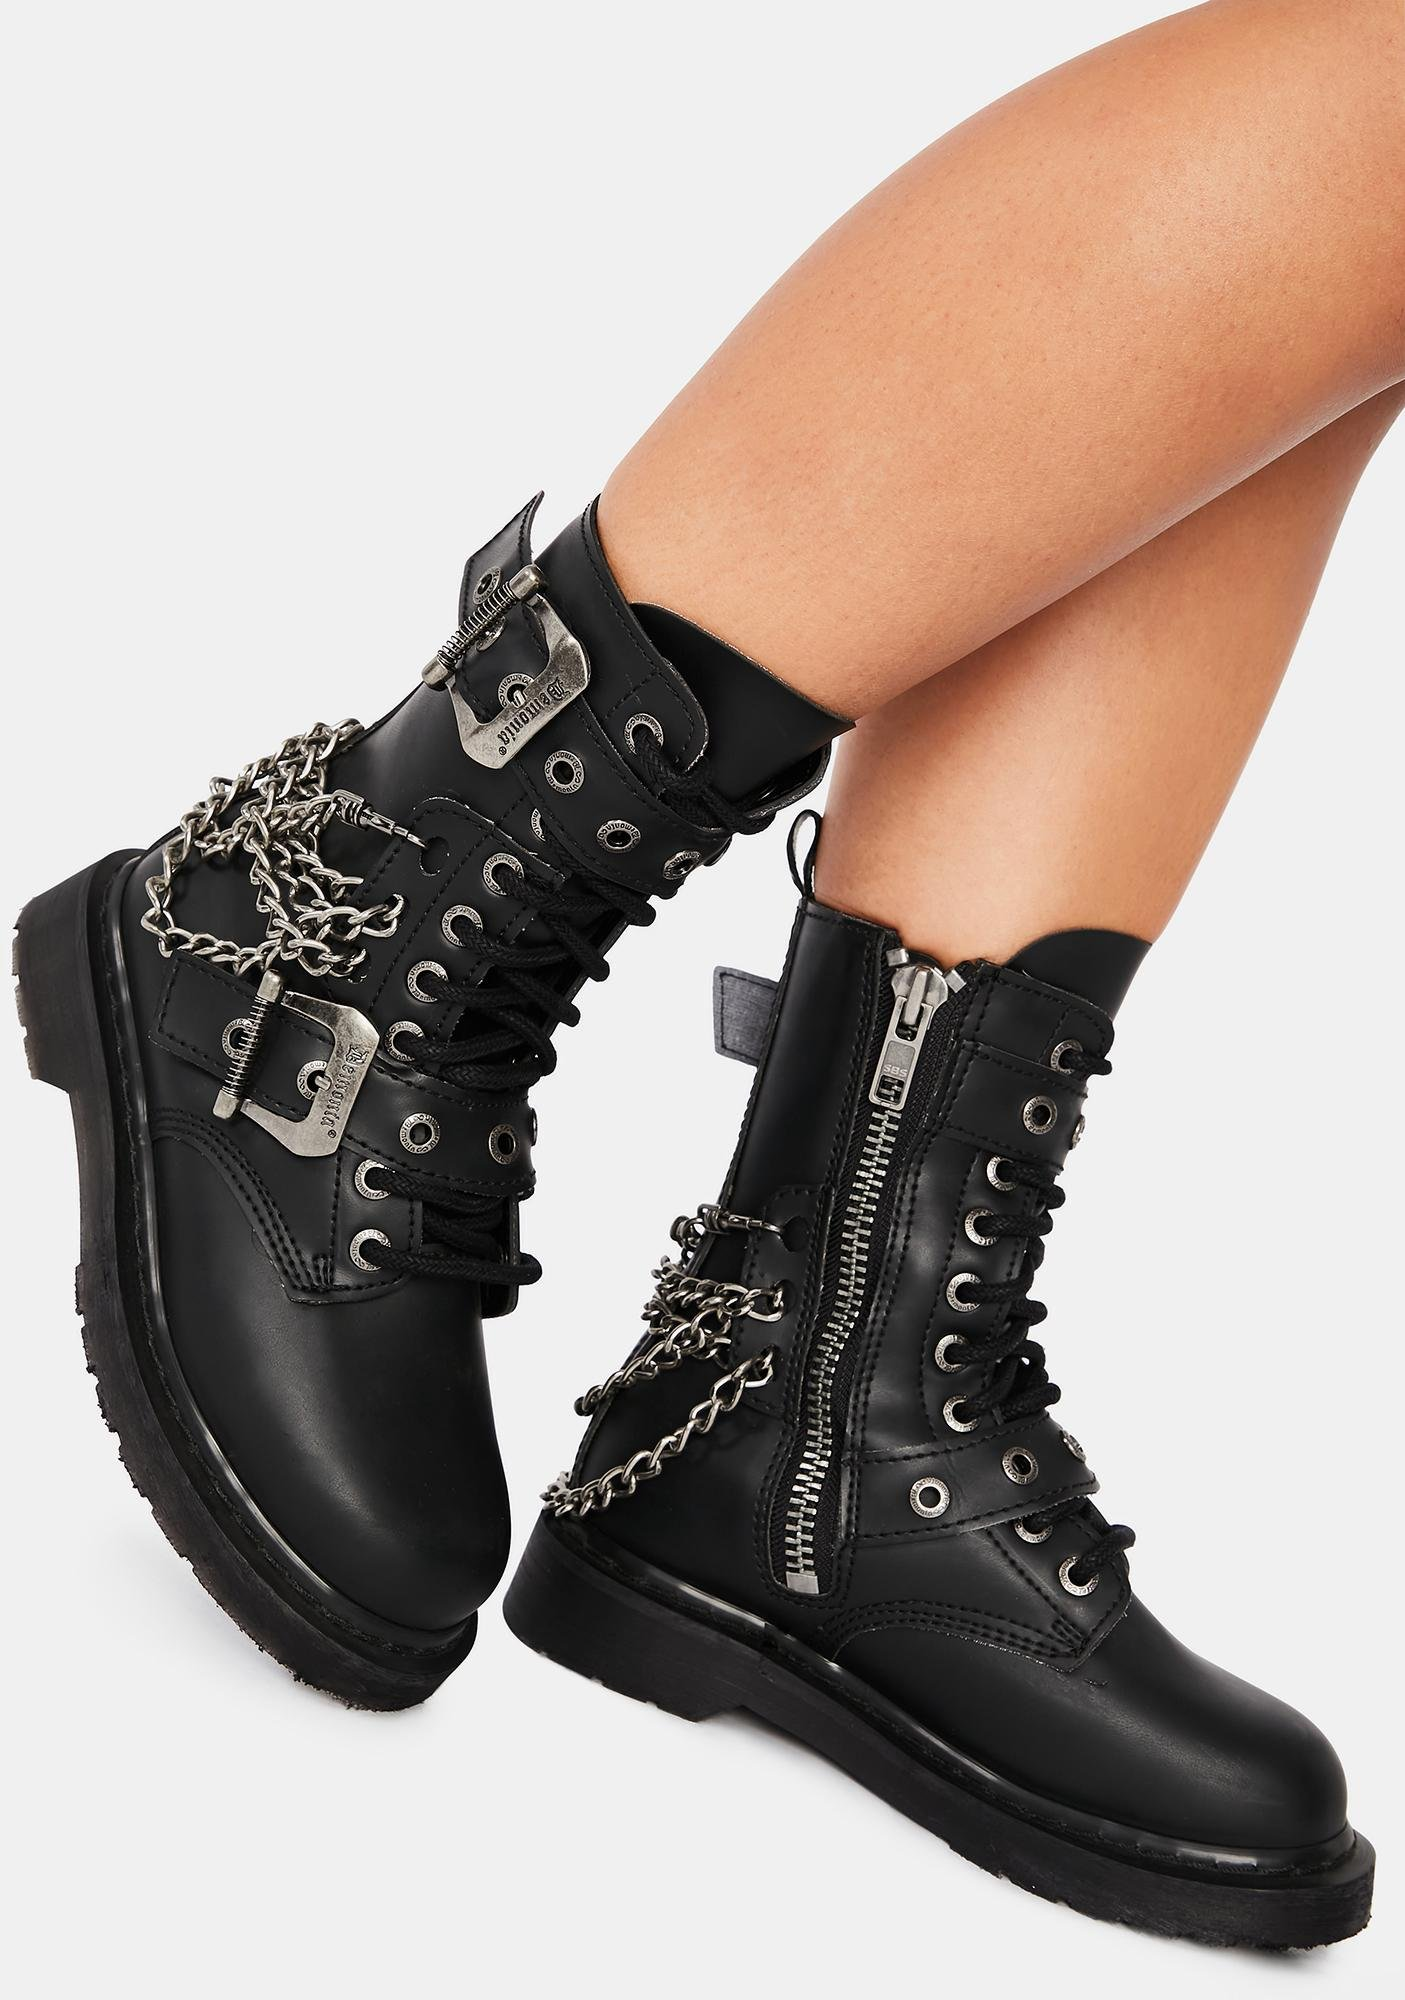 Demonia Chaos Reigns Combat Boots